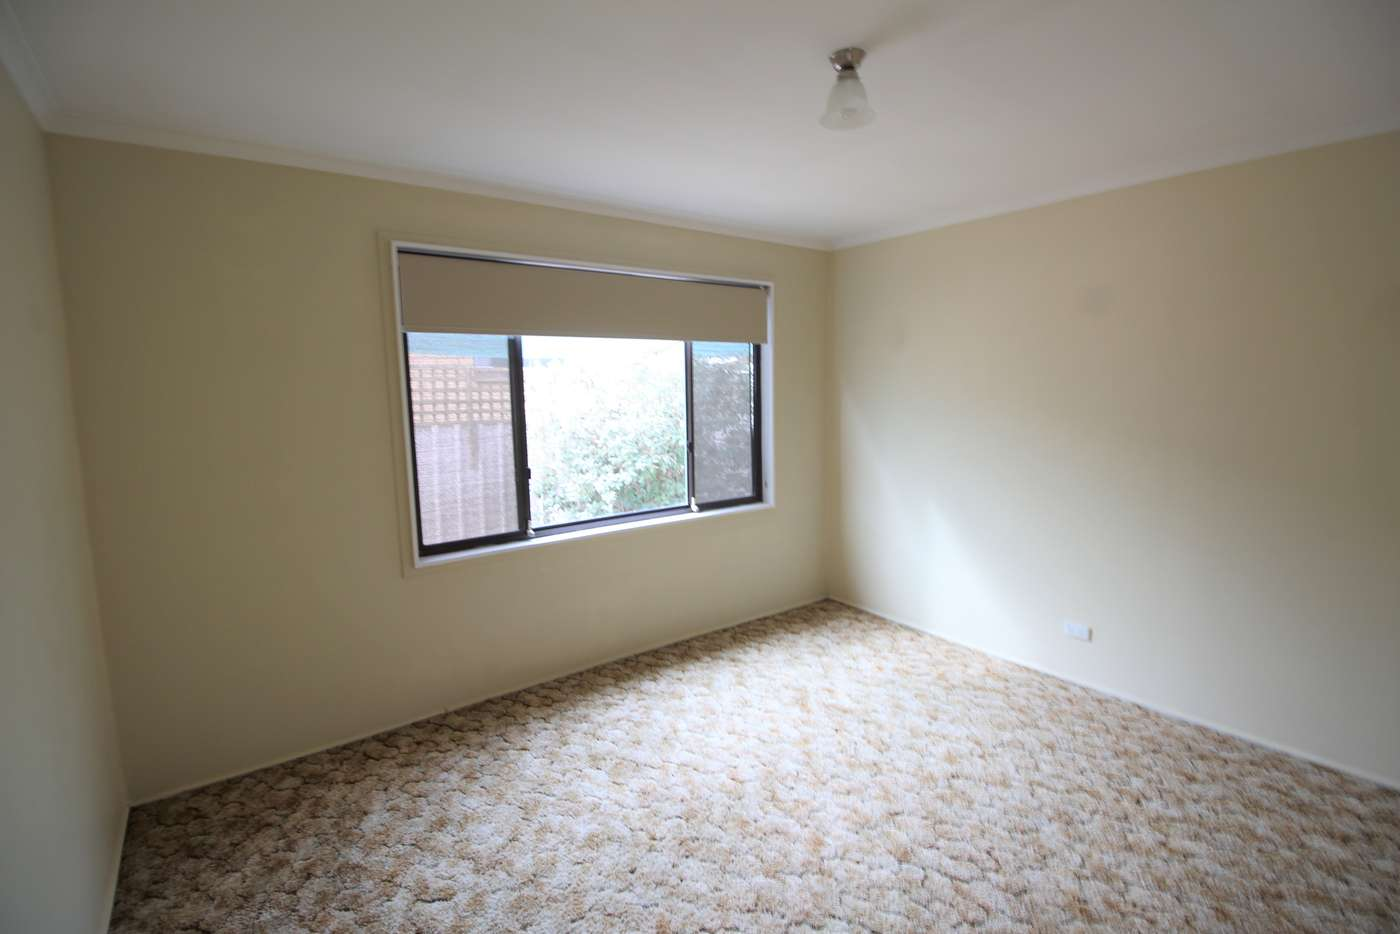 Seventh view of Homely house listing, 308 Dick Road, Lavington NSW 2641